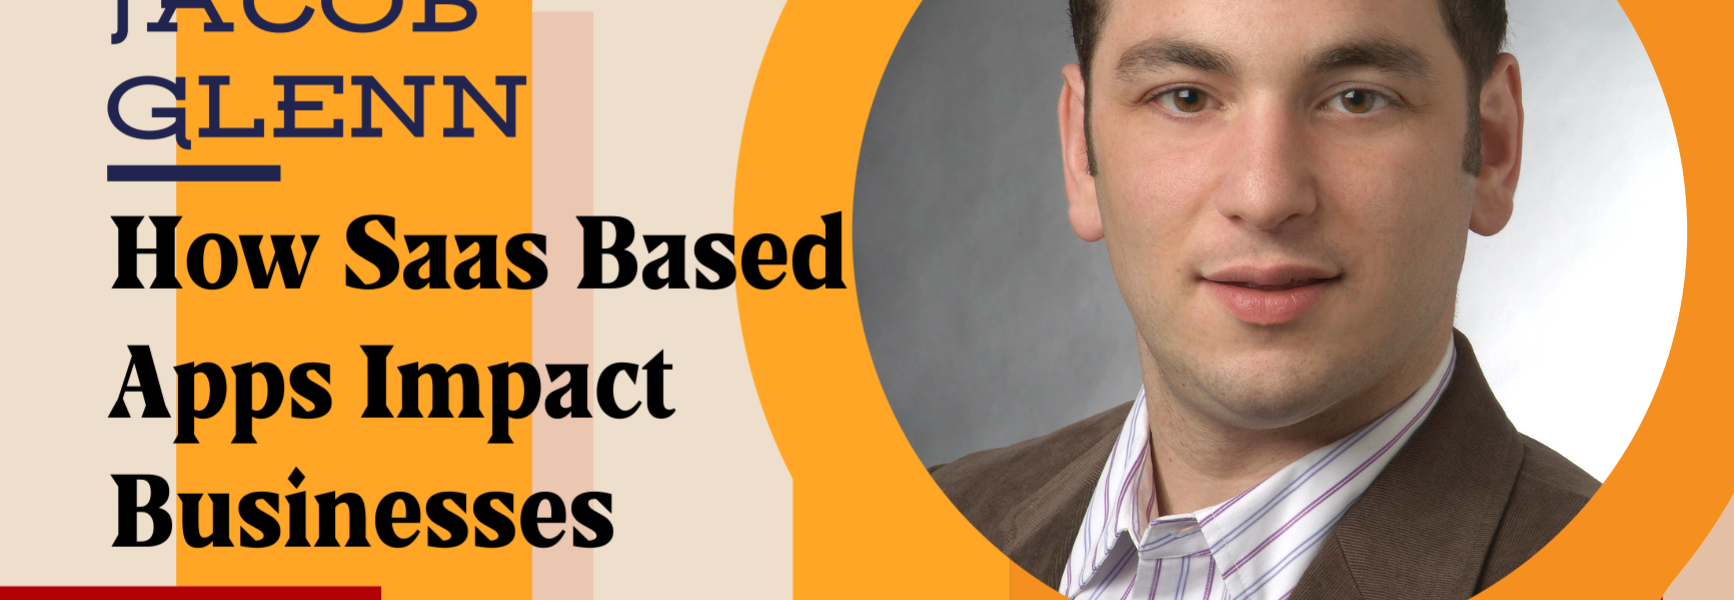 How Saas Based Apps Impact Businesses with Jacob Glenn